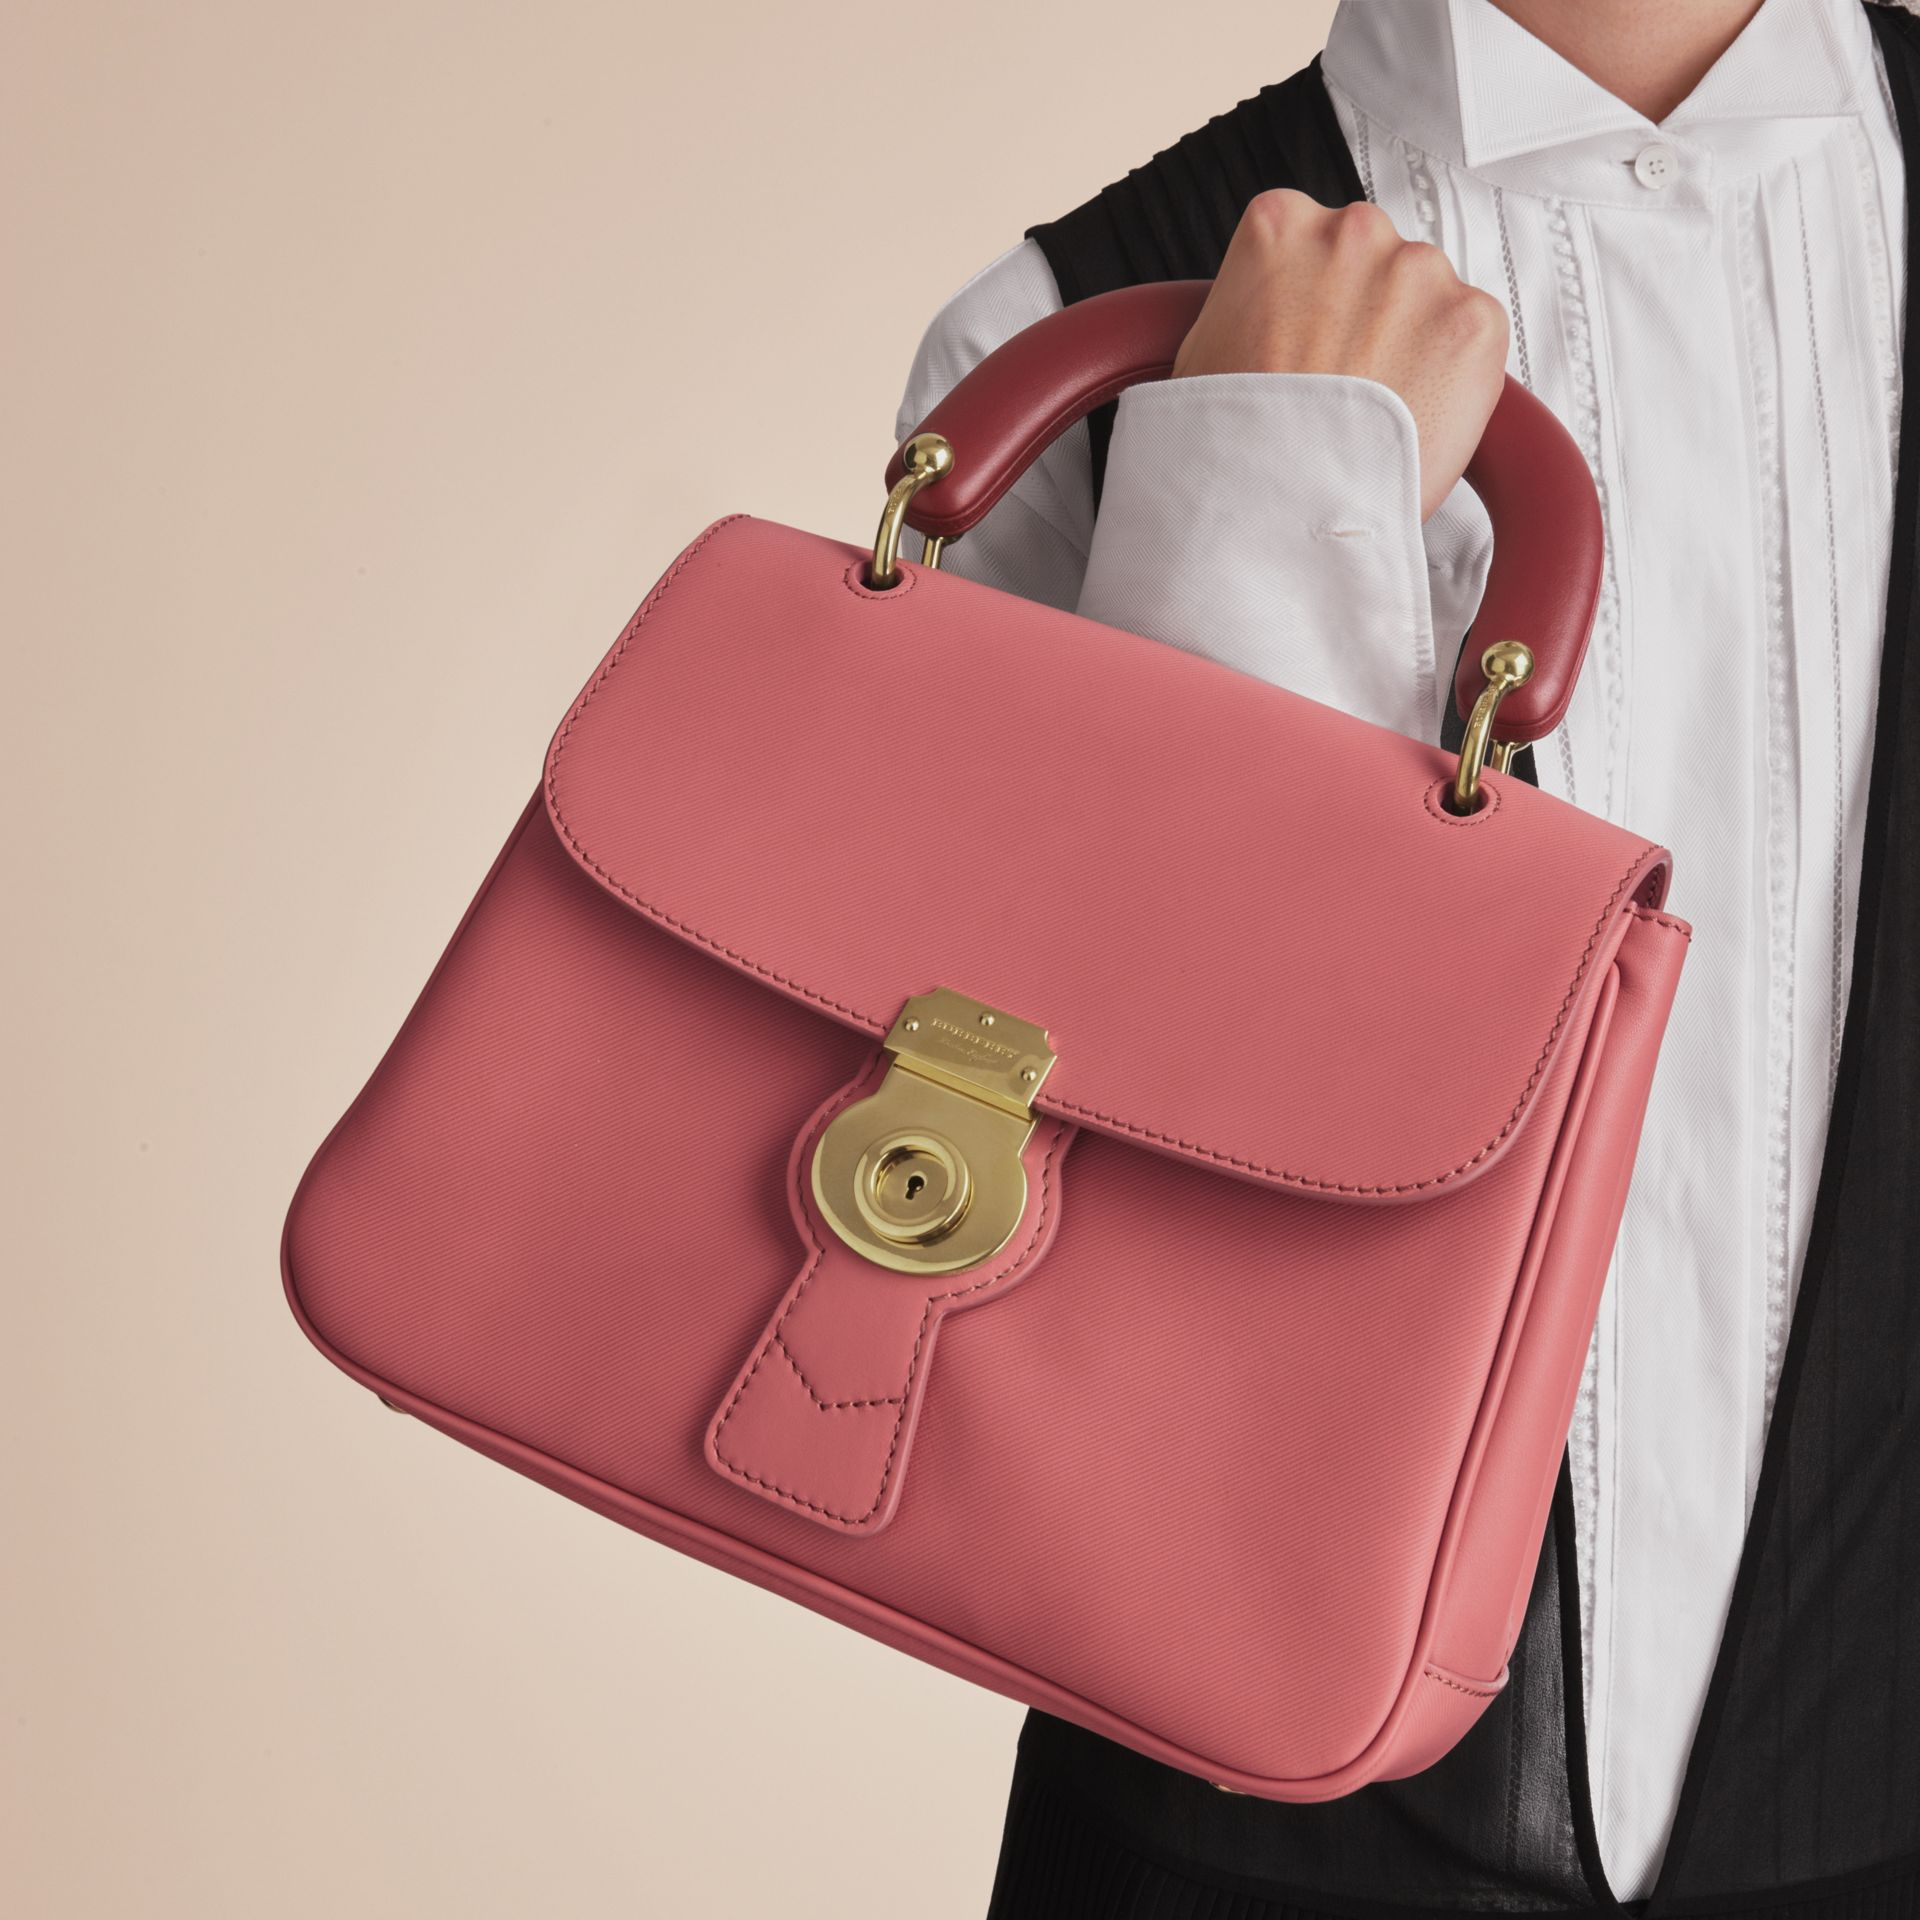 The Medium DK88 Top Handle Bag in Blossom Pink - Women | Burberry Singapore - gallery image 6